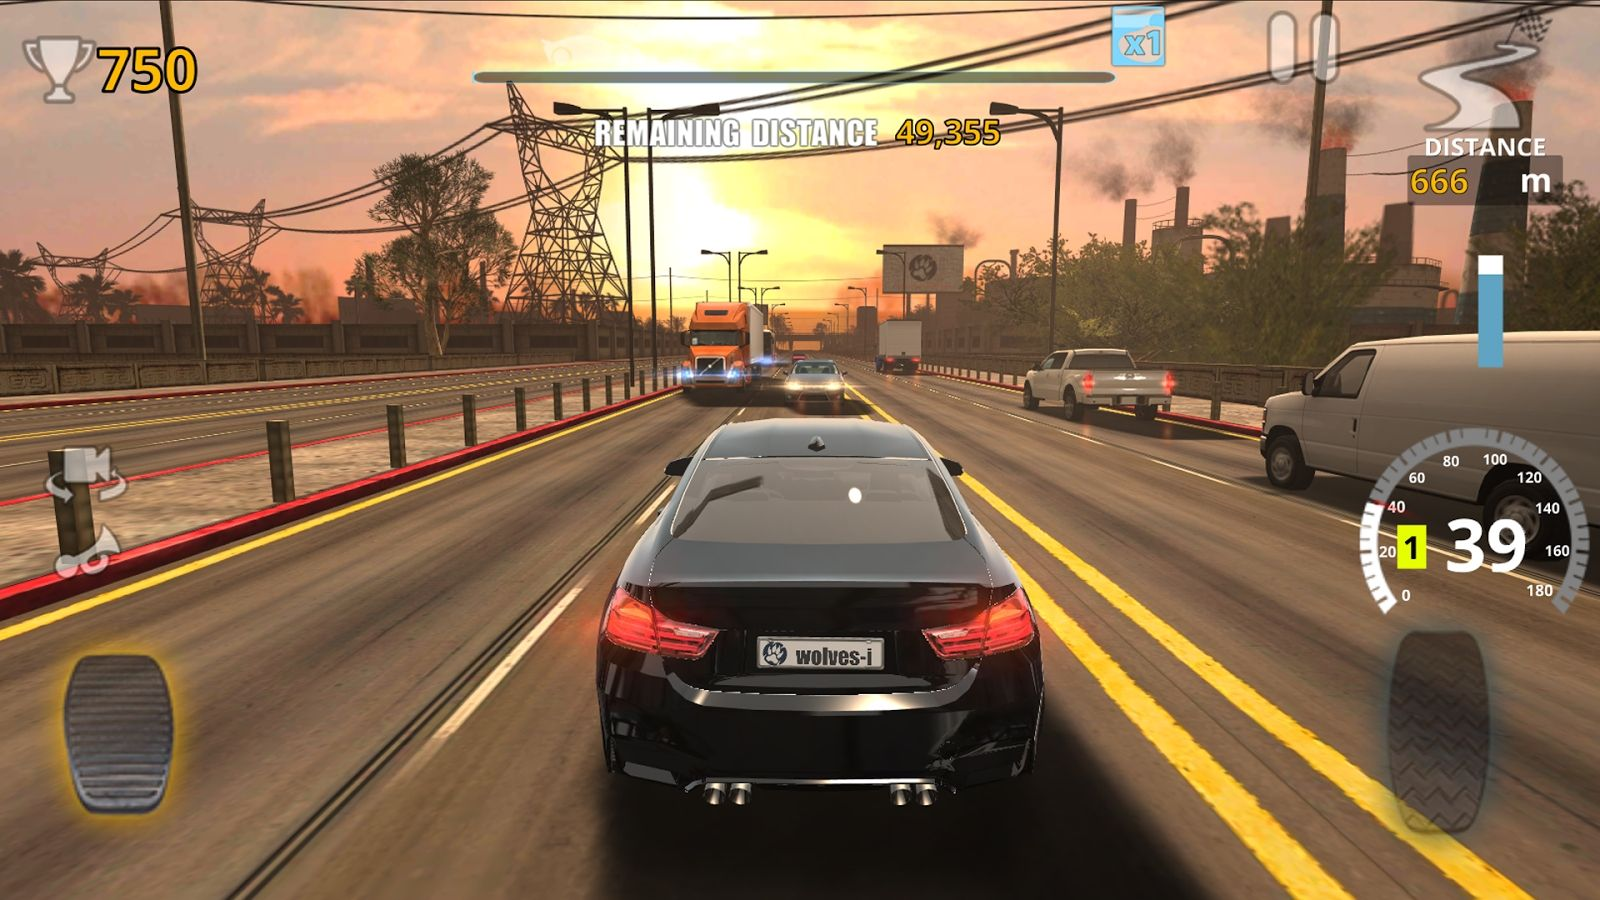 Download Traffic Tour v1.2.6 Game APK Full has been posted